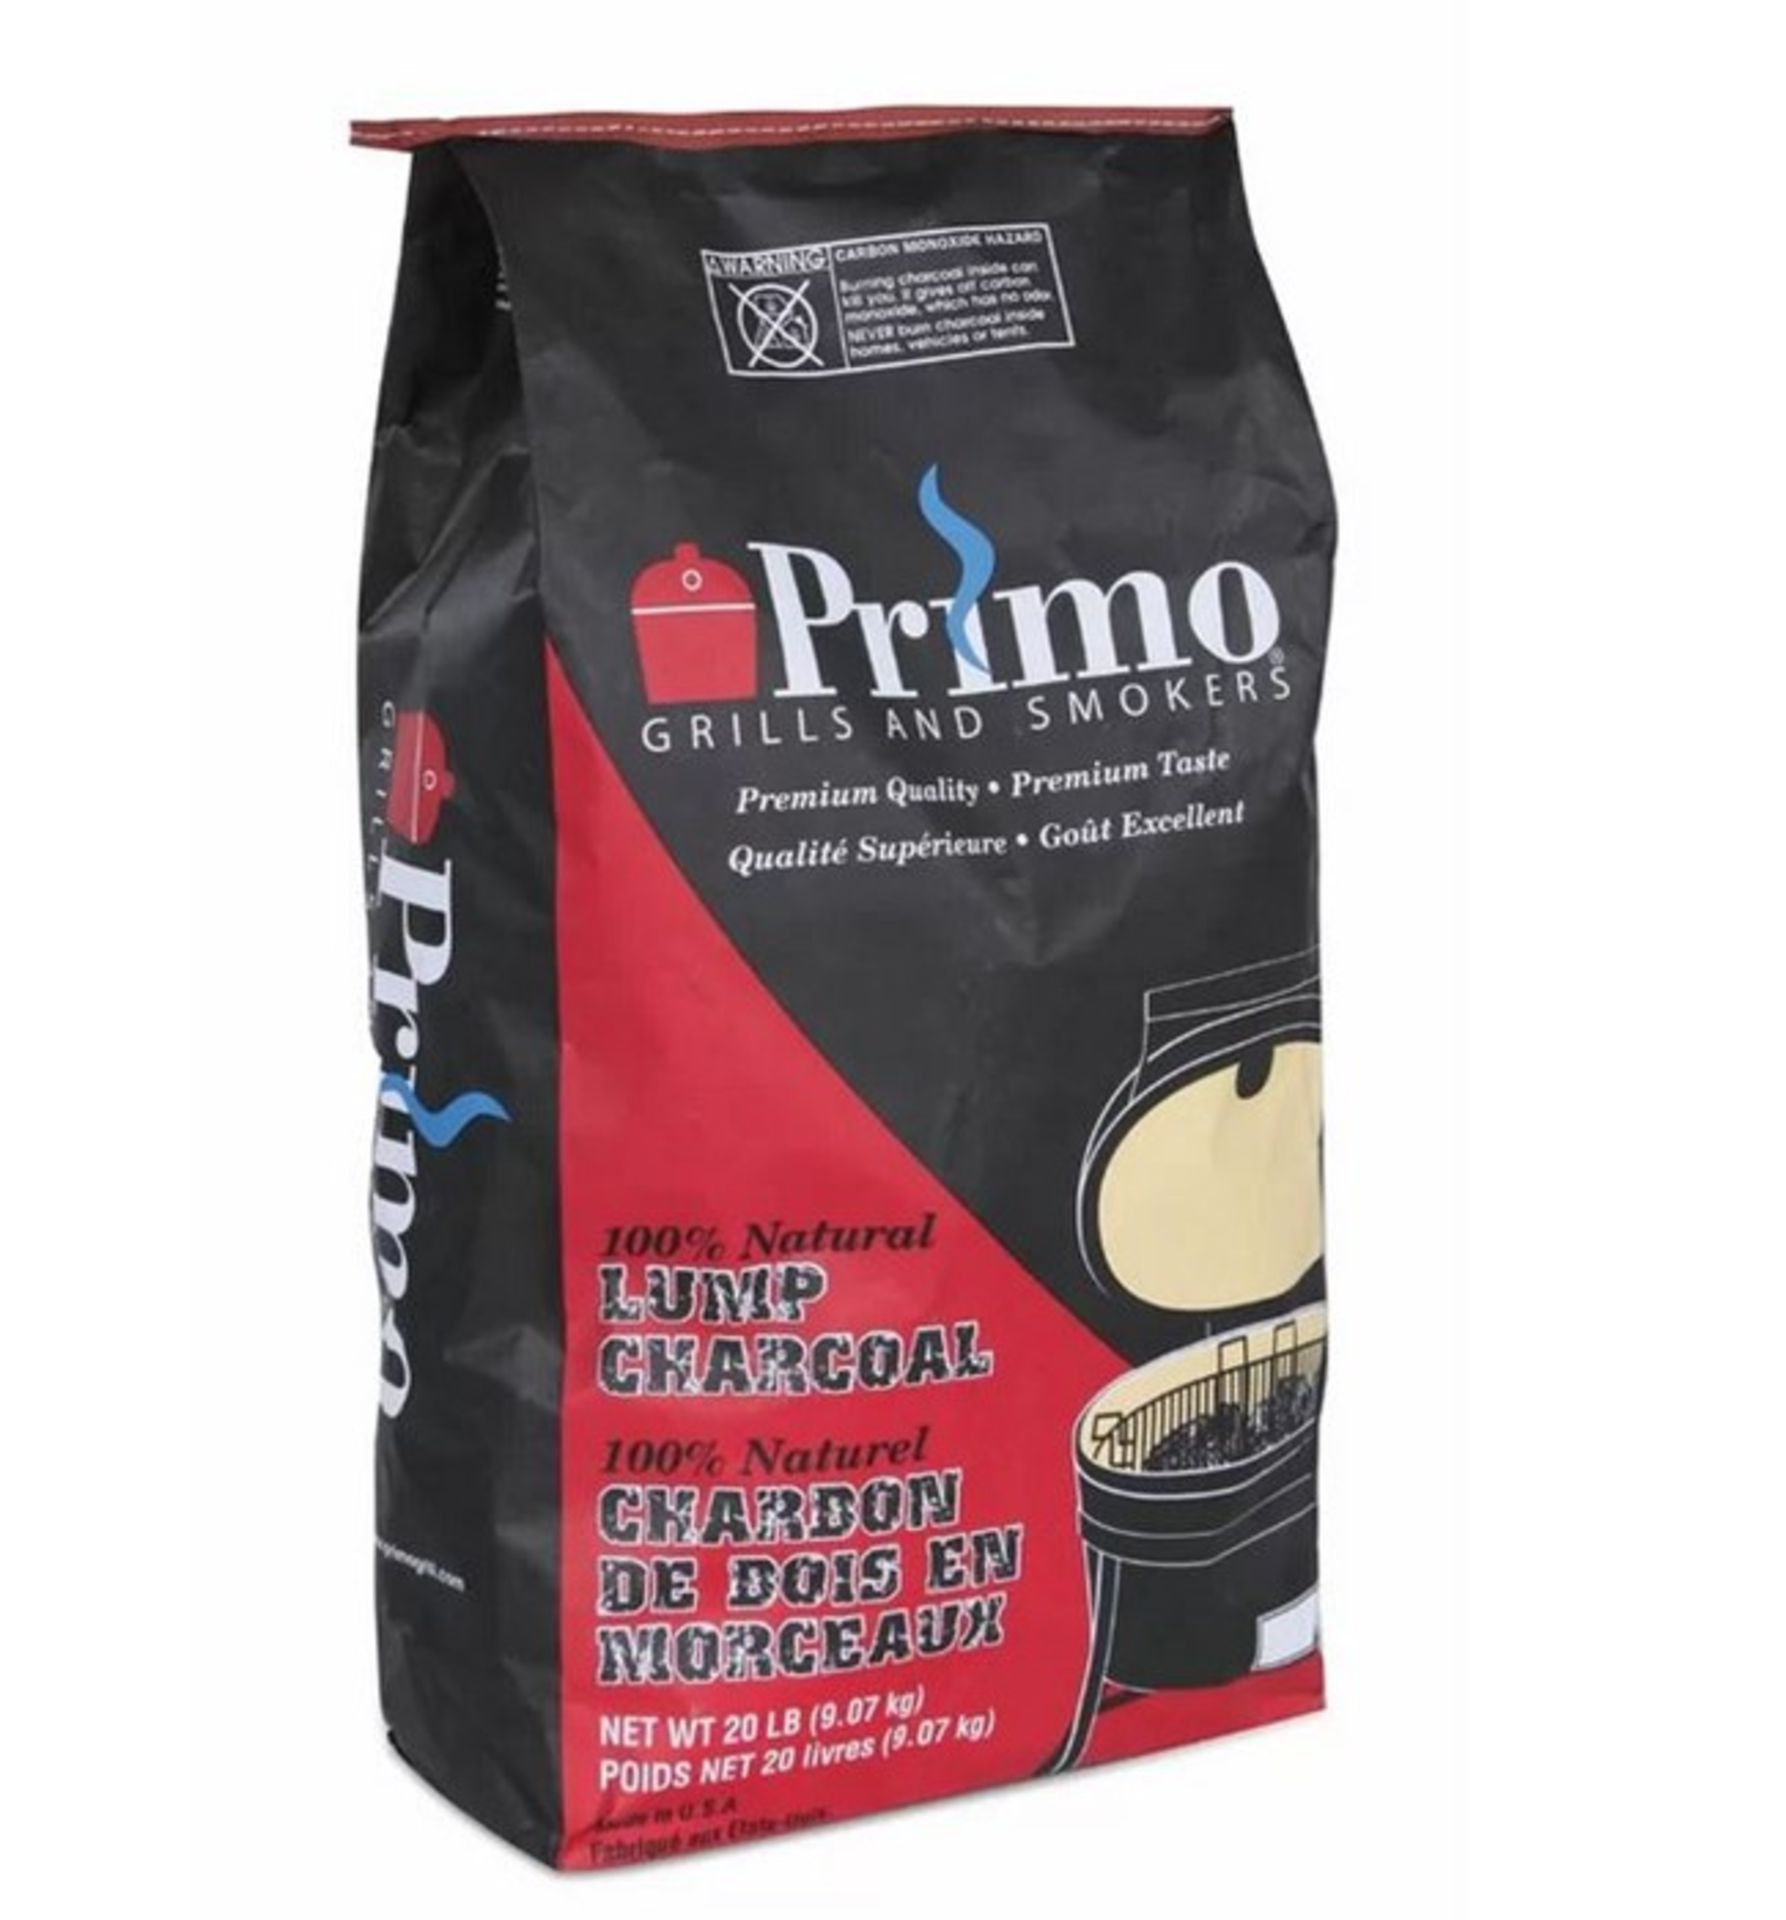 NATURAL LUMP WOOD CHARCOAL BY PRIMO